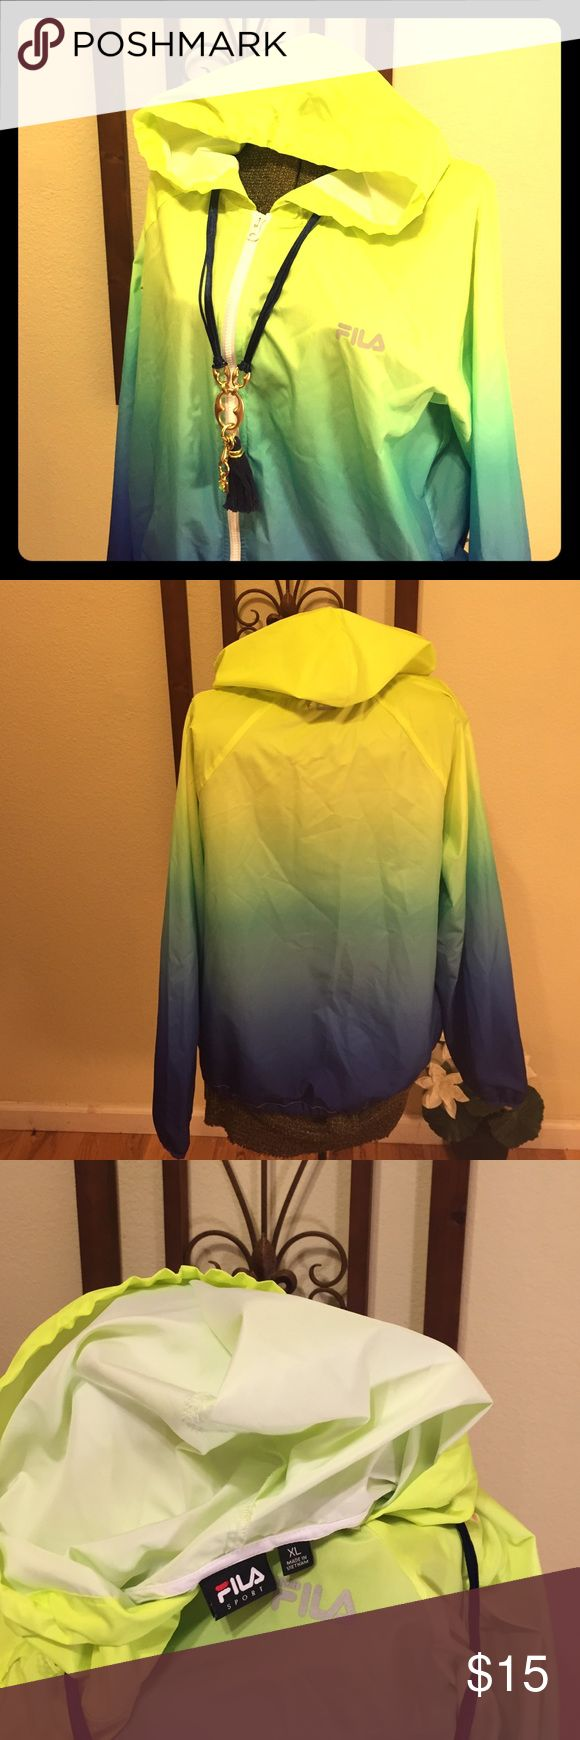 Fila SPORT wind-jacket Cool colors that runs from vibrant yellows to blue hues. SIZE XL, draw string bottom along with full zipper. Great jacket for any occasion. FILA Jackets & Coats